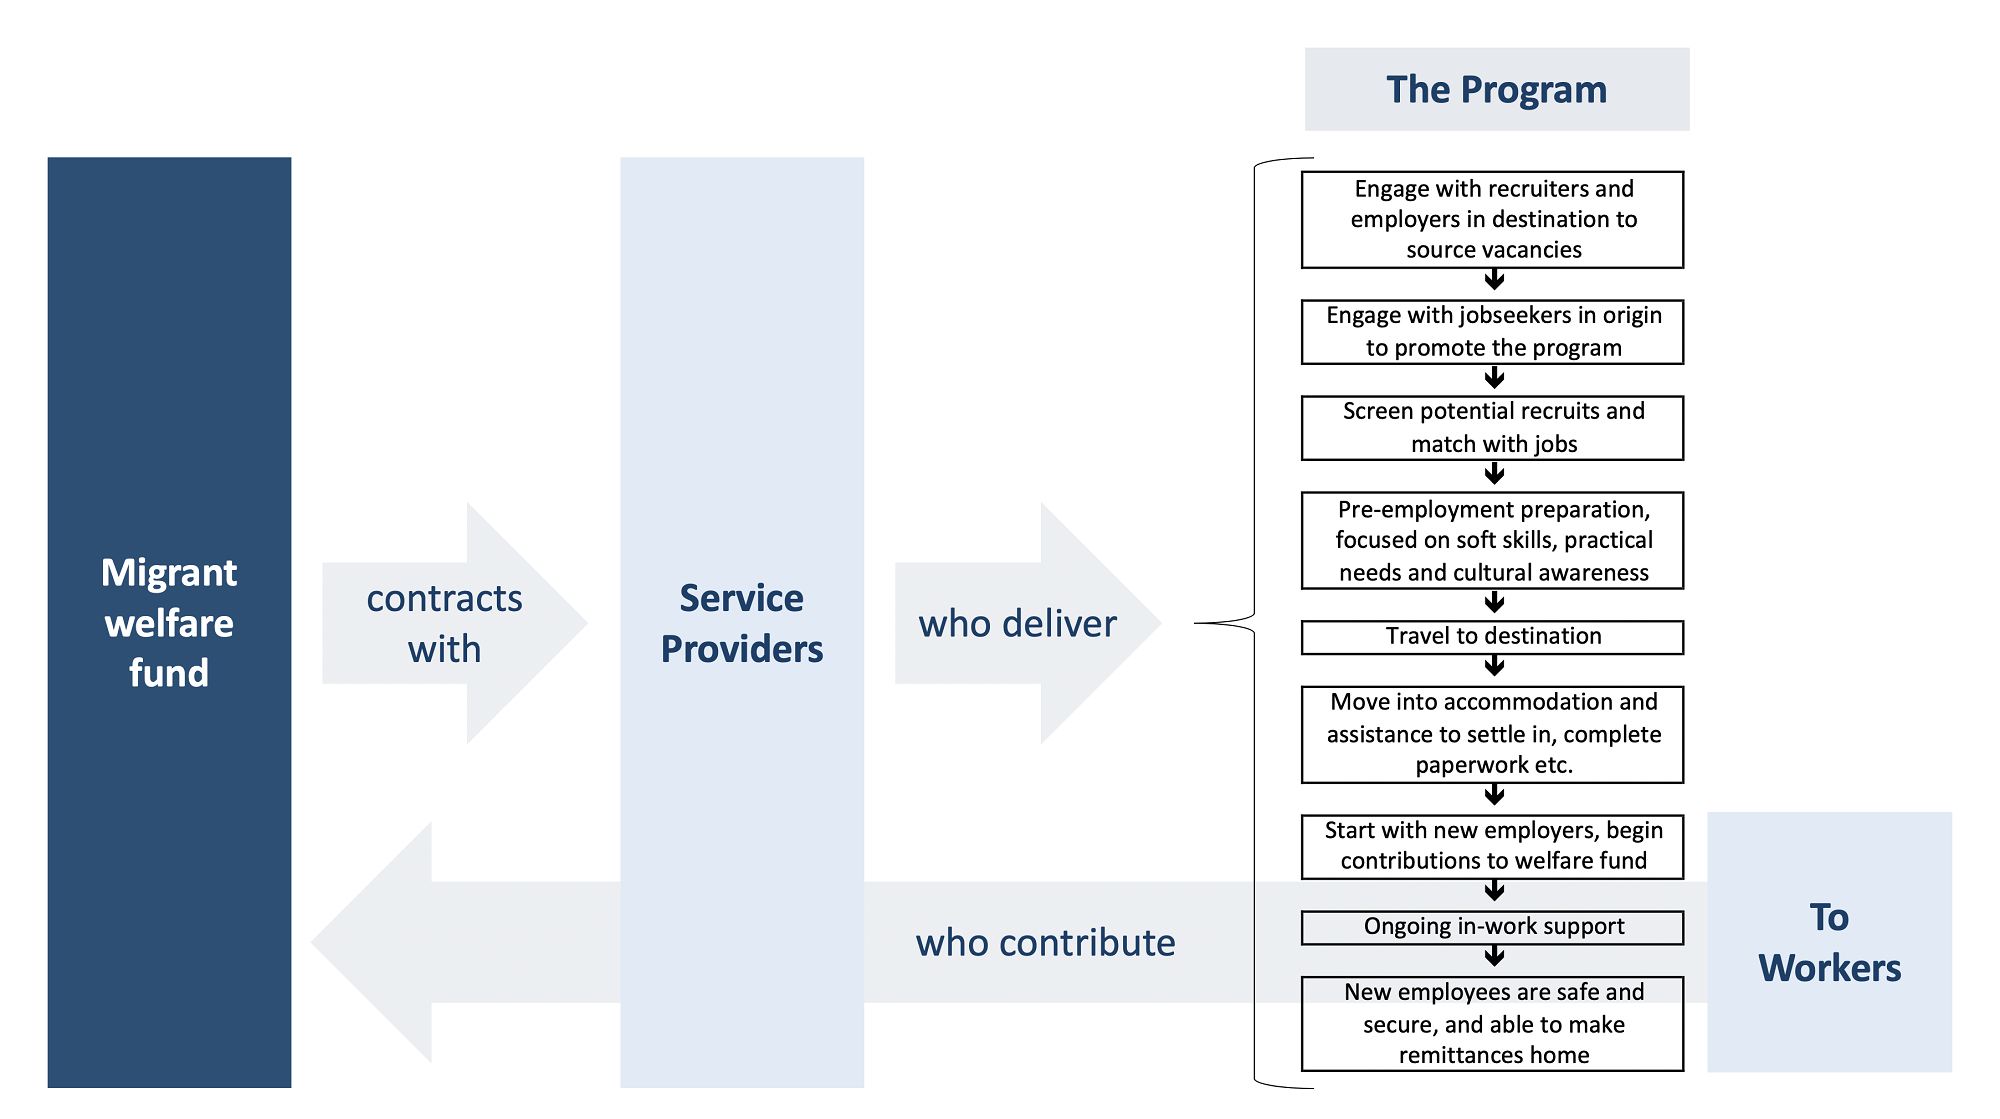 A diagram of the new system brought about the migrant welfare fund, and how it would work